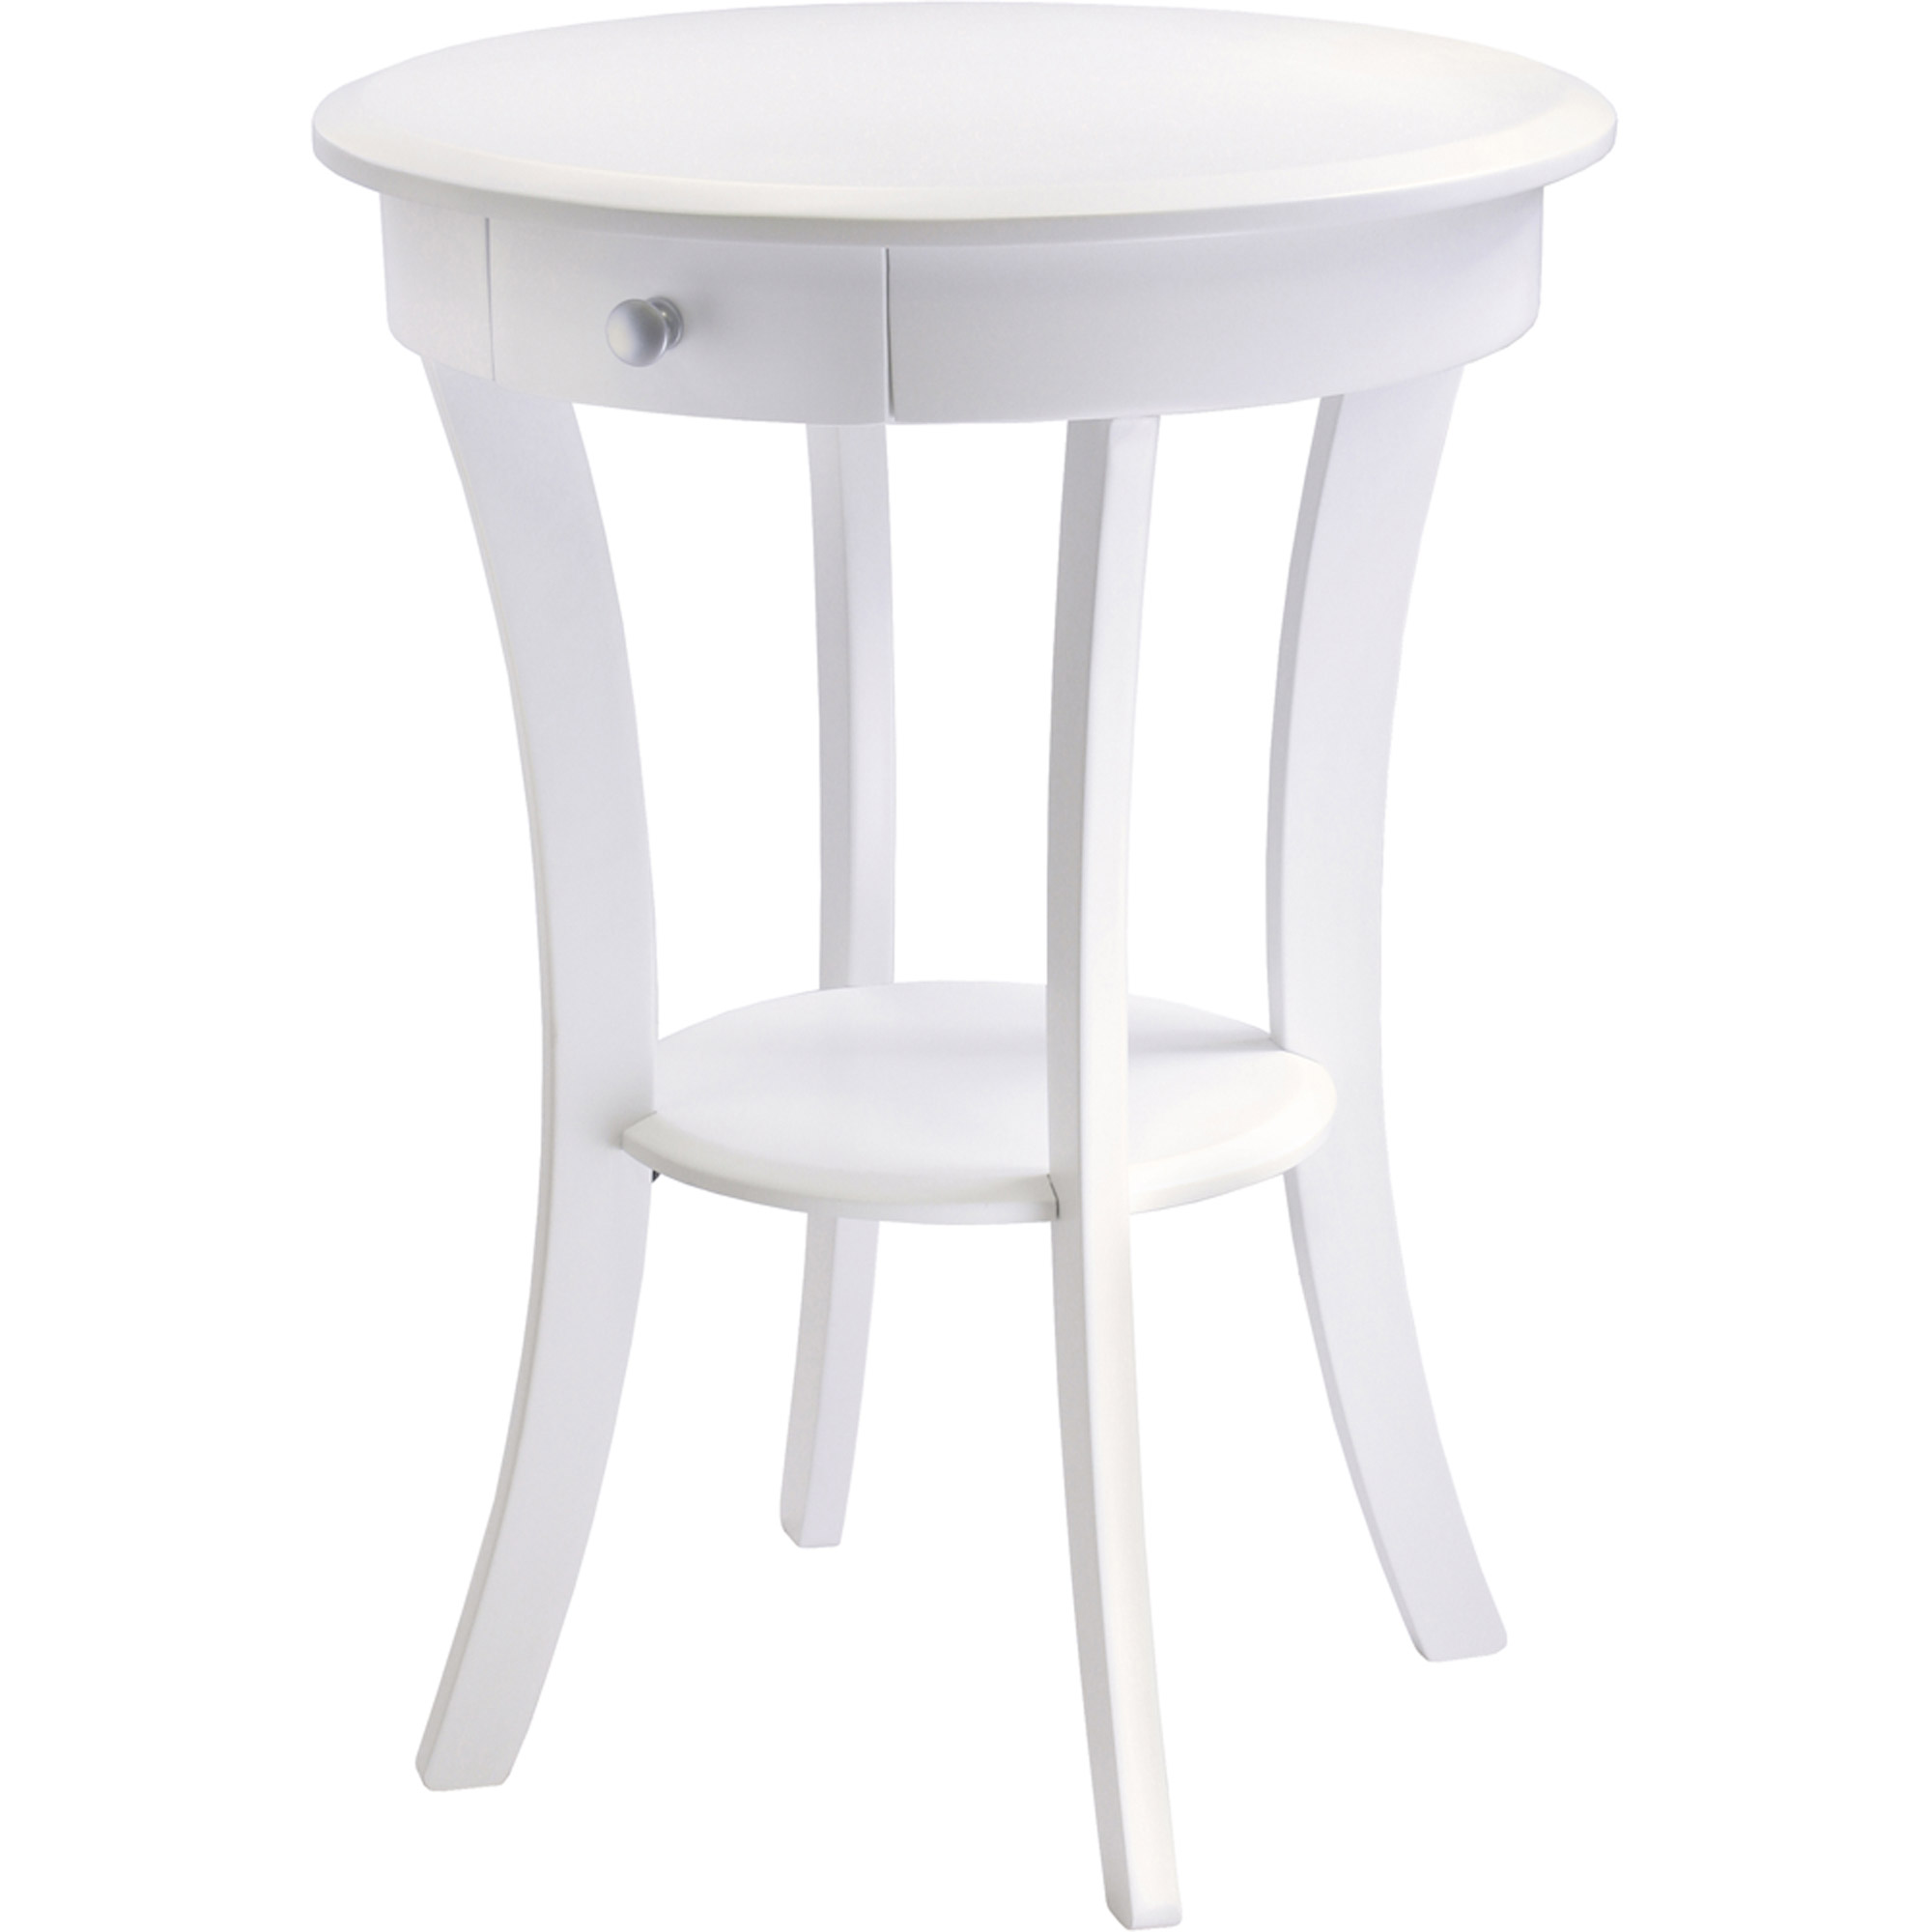 sasha round accent table end tables ikea lack diy kitchen plans small circular tablecloths little white secretary desk sun umbrella second hand kitchens carpet transition piece